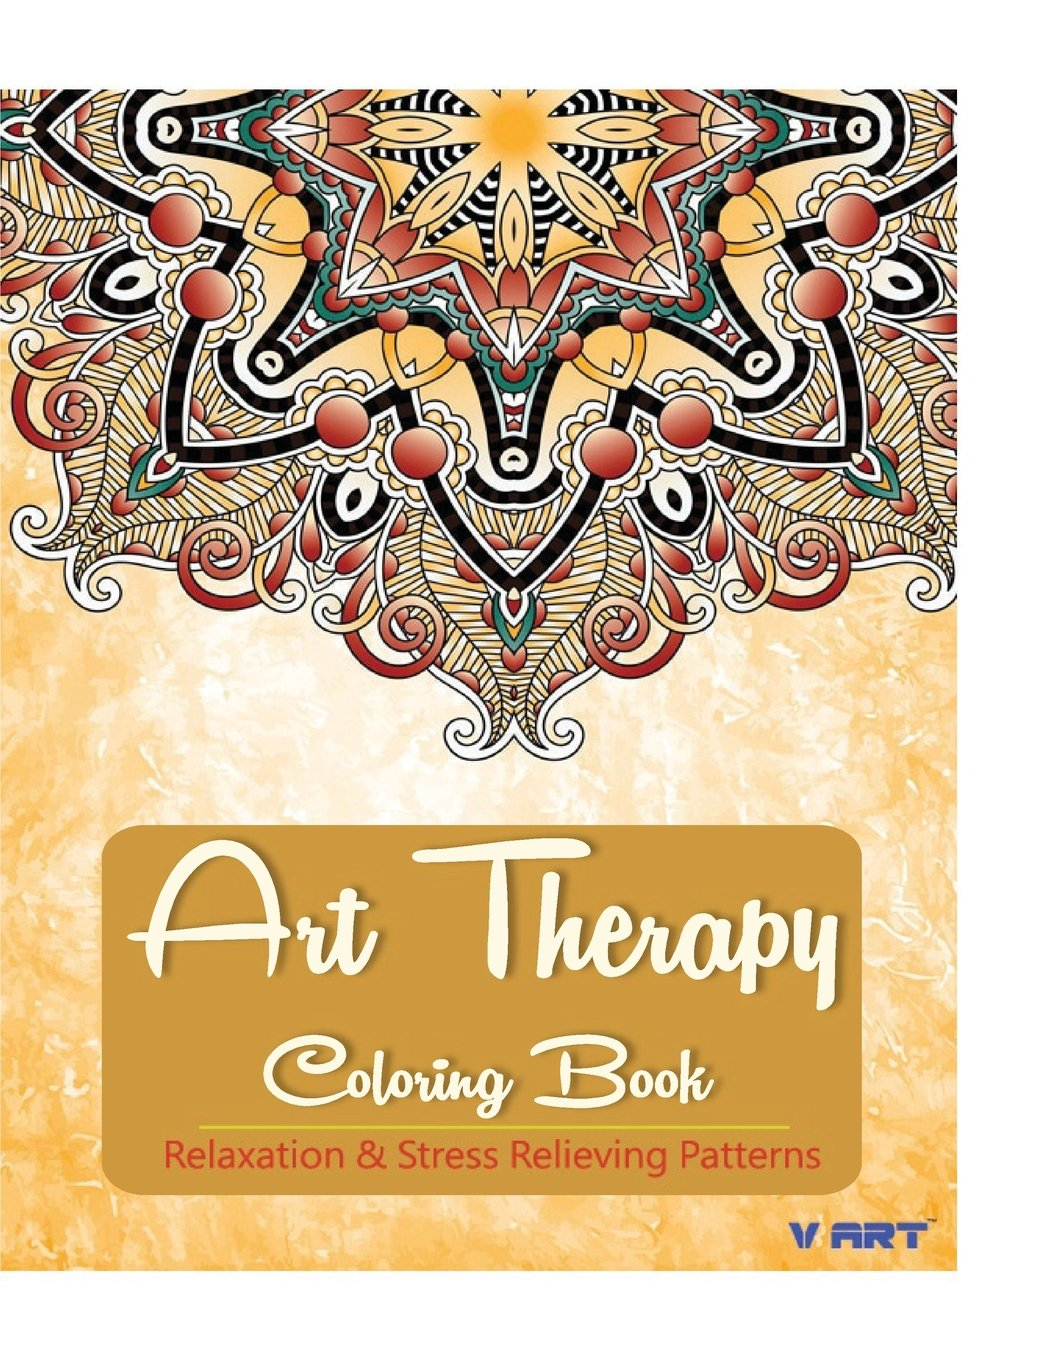 Art Therapy Coloring Book: Art Therapy Coloring Books for Adults : Stress Relieving Patterns (Volume 7) pdf epub